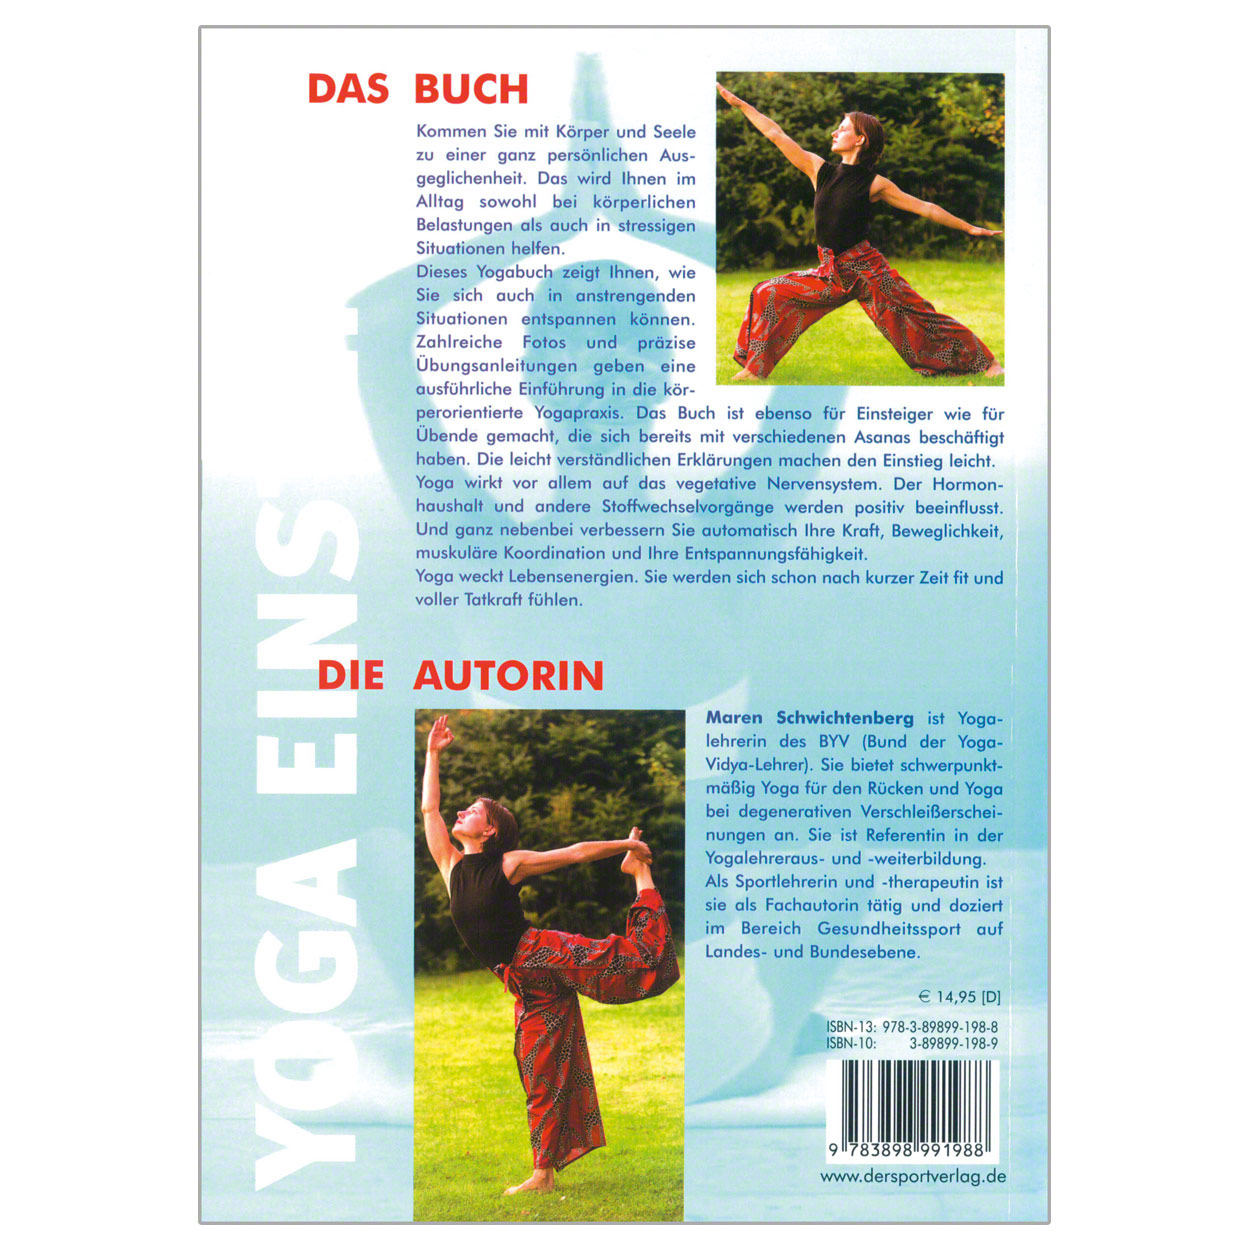 Gymnastik & Fitness: Buch Yoga für Einsteiger - You can do it, 168 Seiten